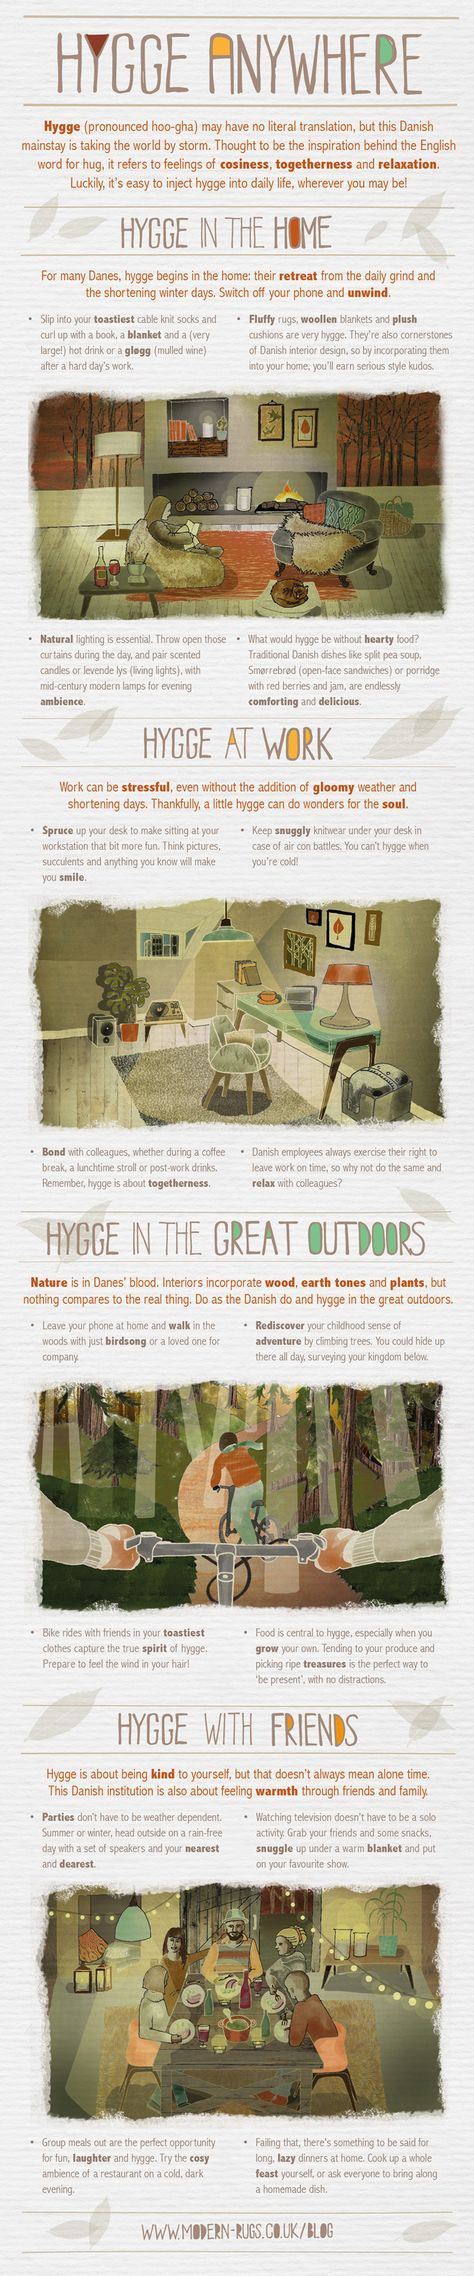 How to Hygge #Infographic #LifeStyle